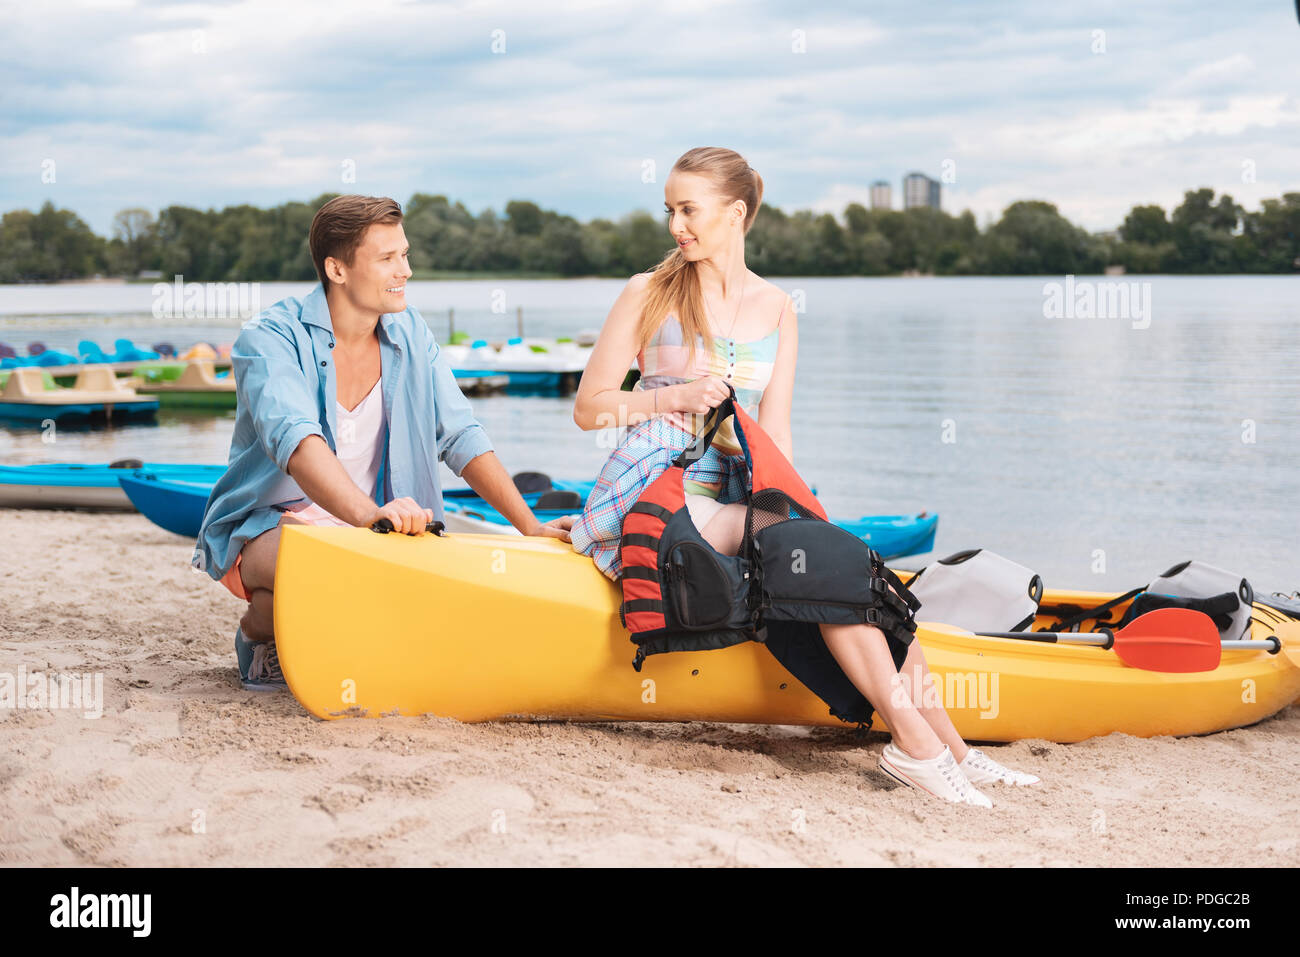 Blonde-haired girlfriend holding life vest while preparing for kayaking - Stock Image